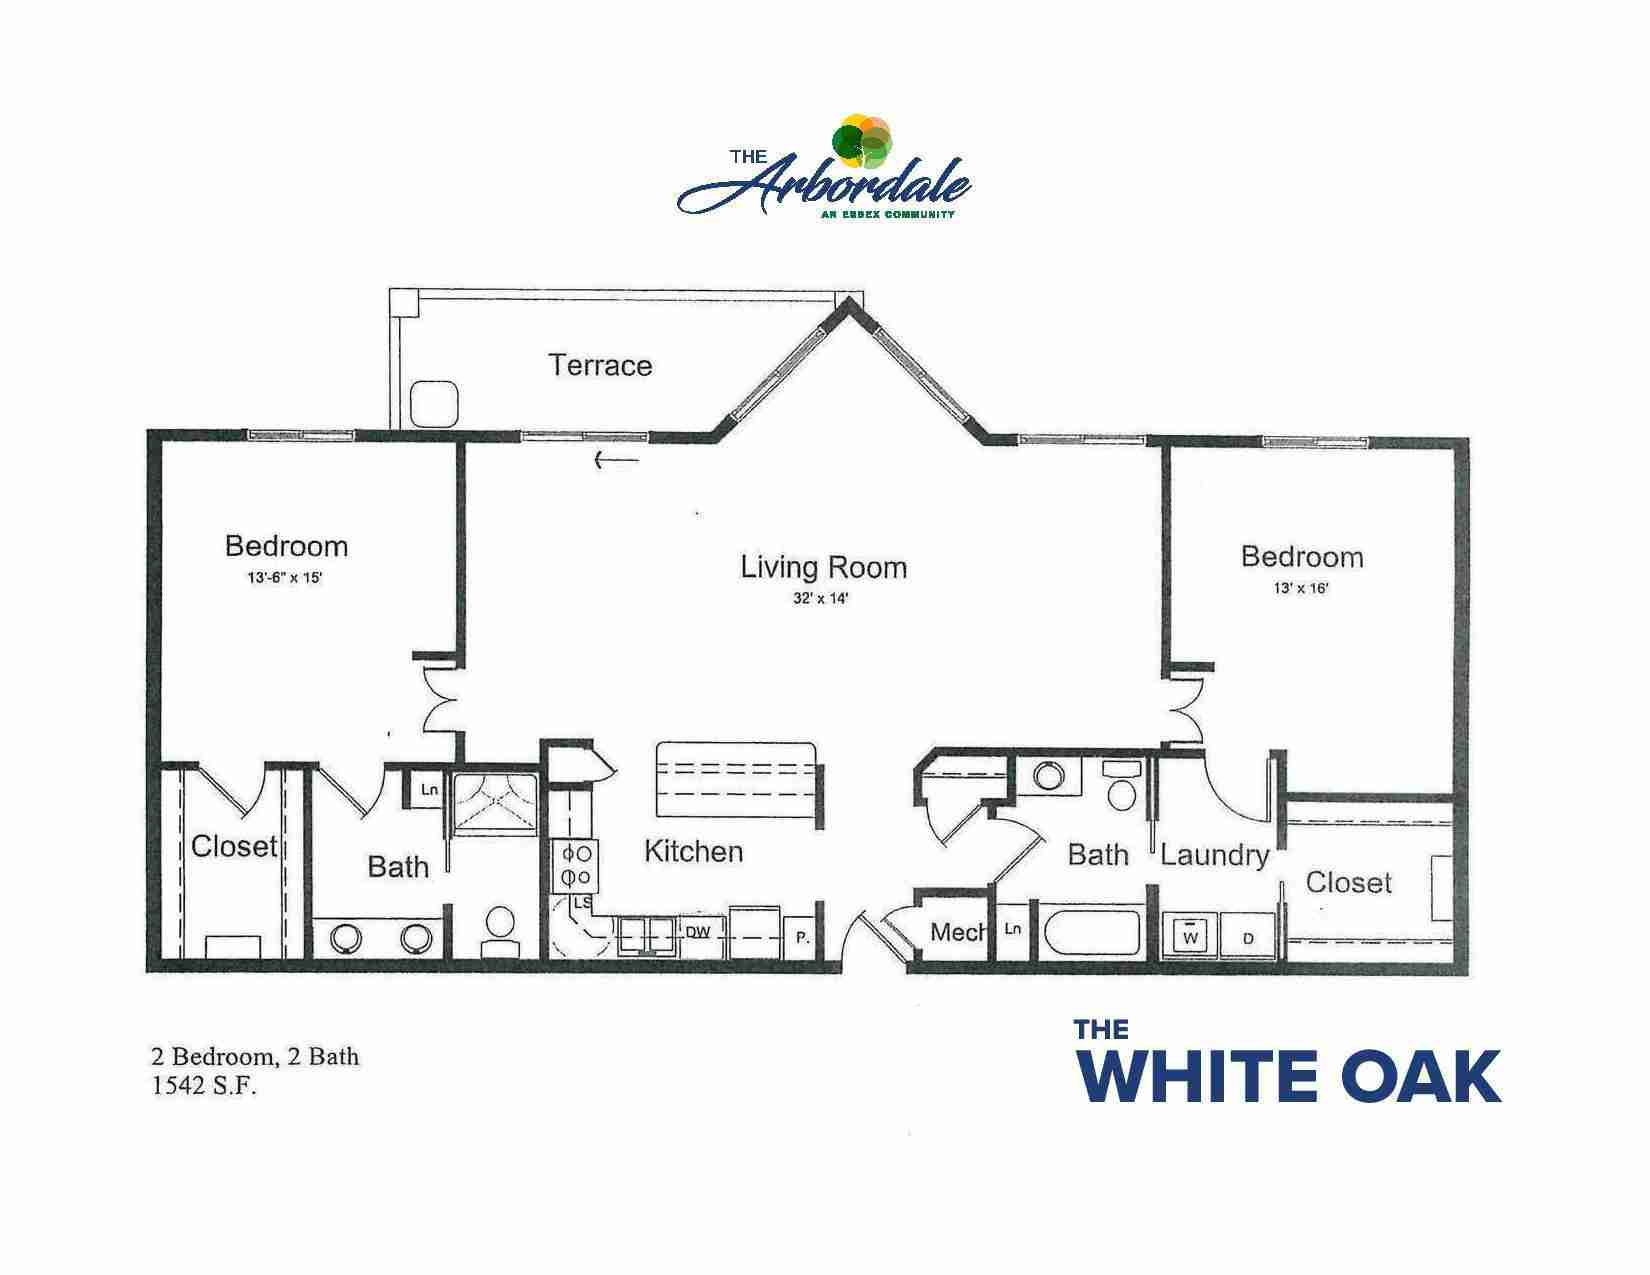 the white oak floor plan, 2 bedroom, 2 bath, 1542 sq ft